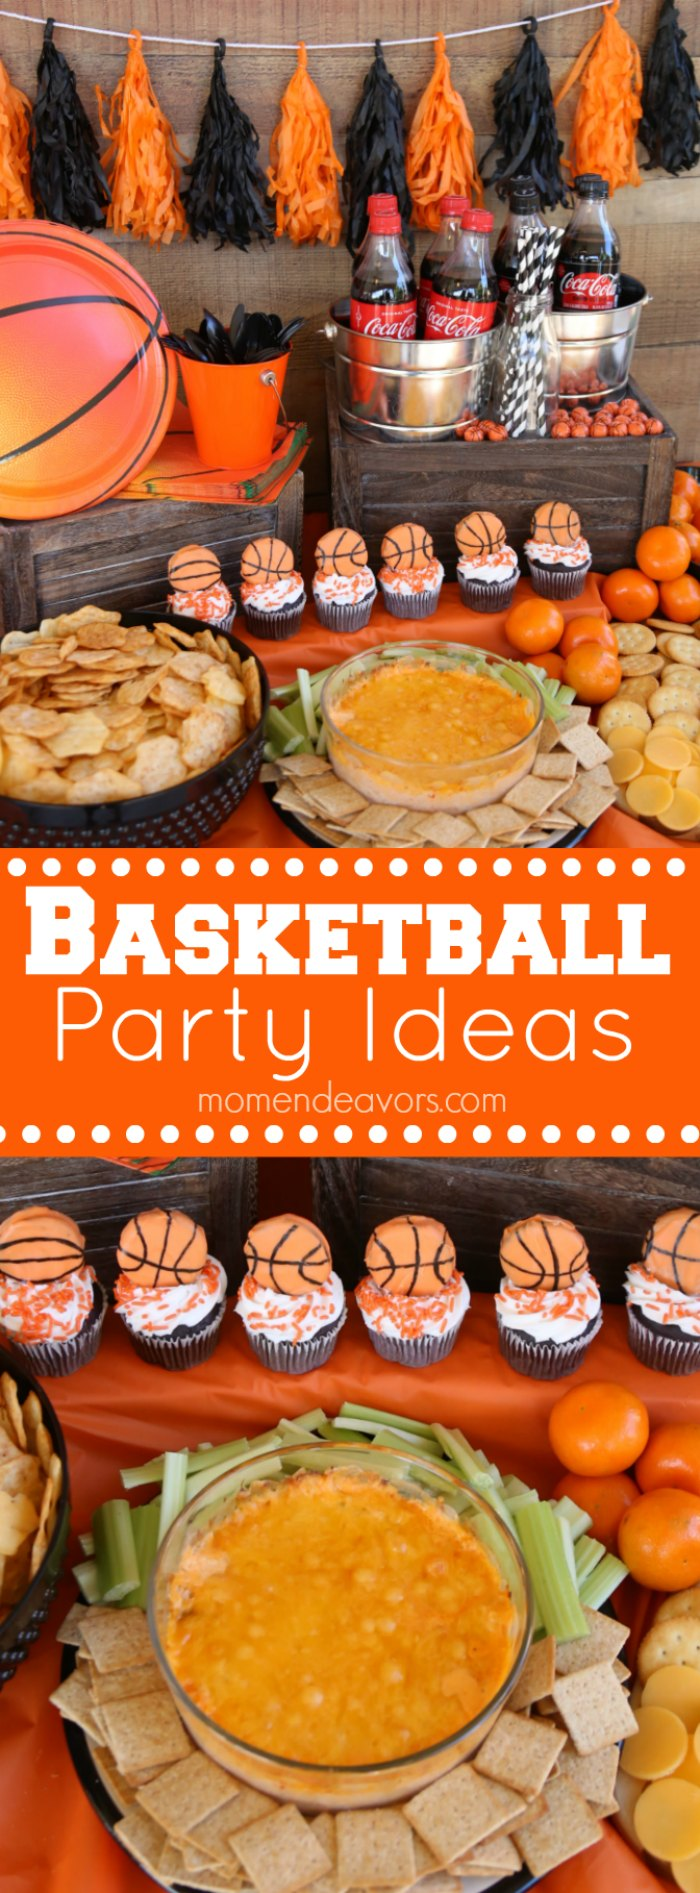 imple Basketball Party Ideas